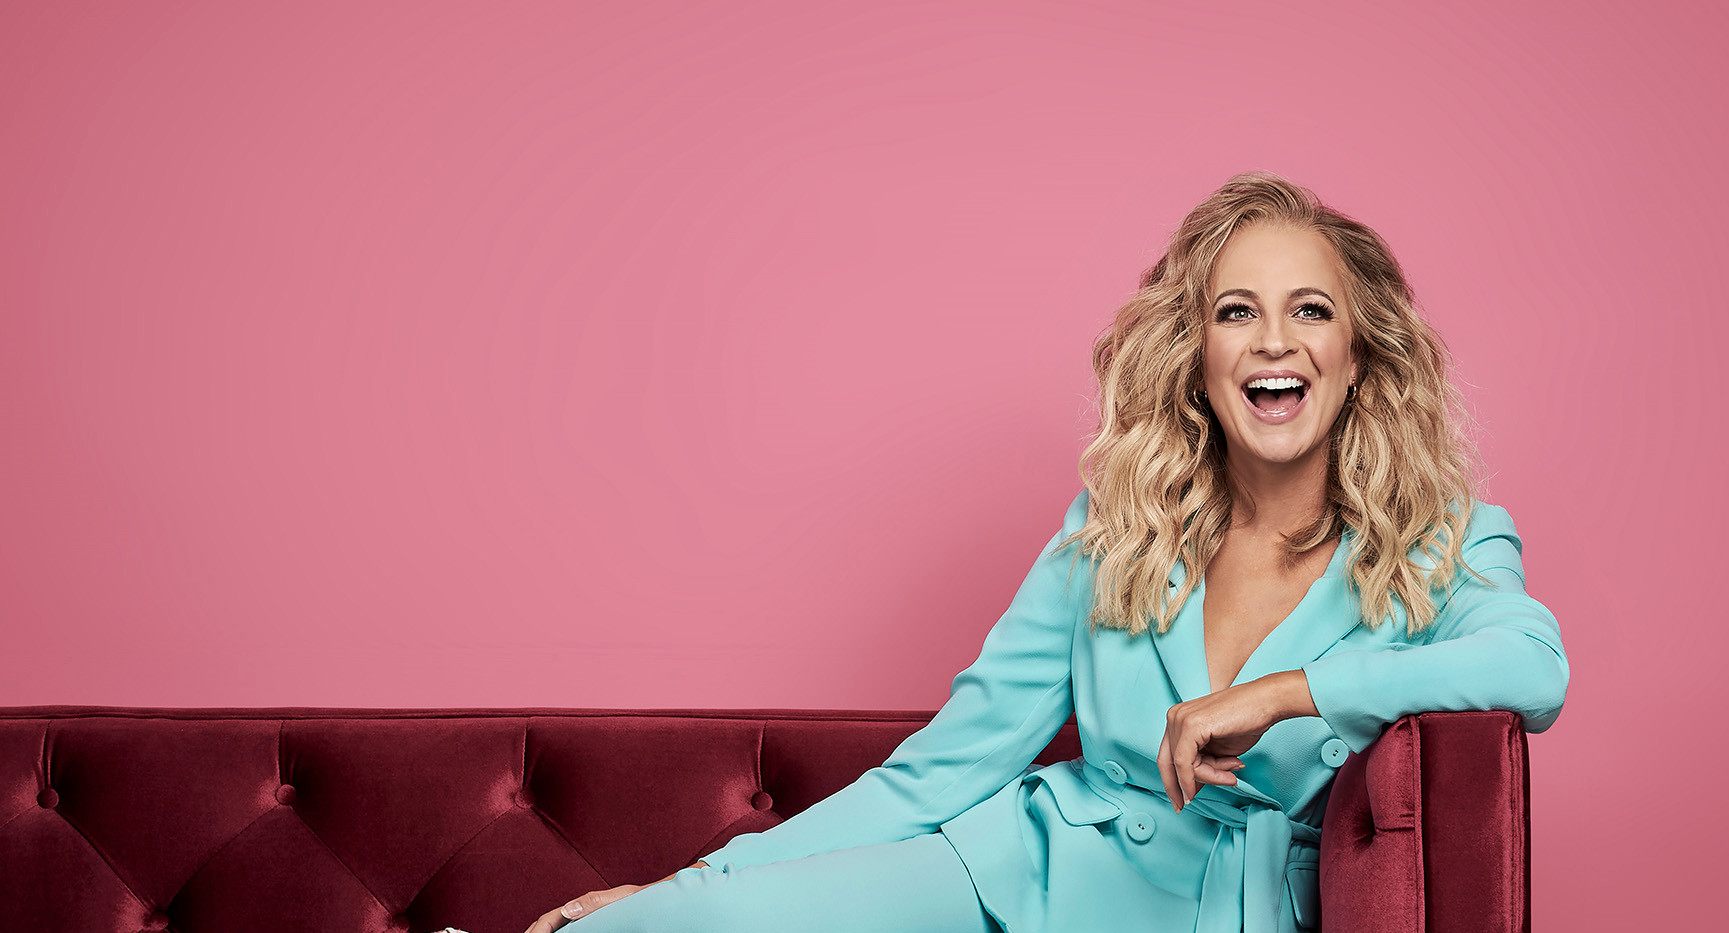 Carrie Bickmore - The Project  Art Direction & Set Styling